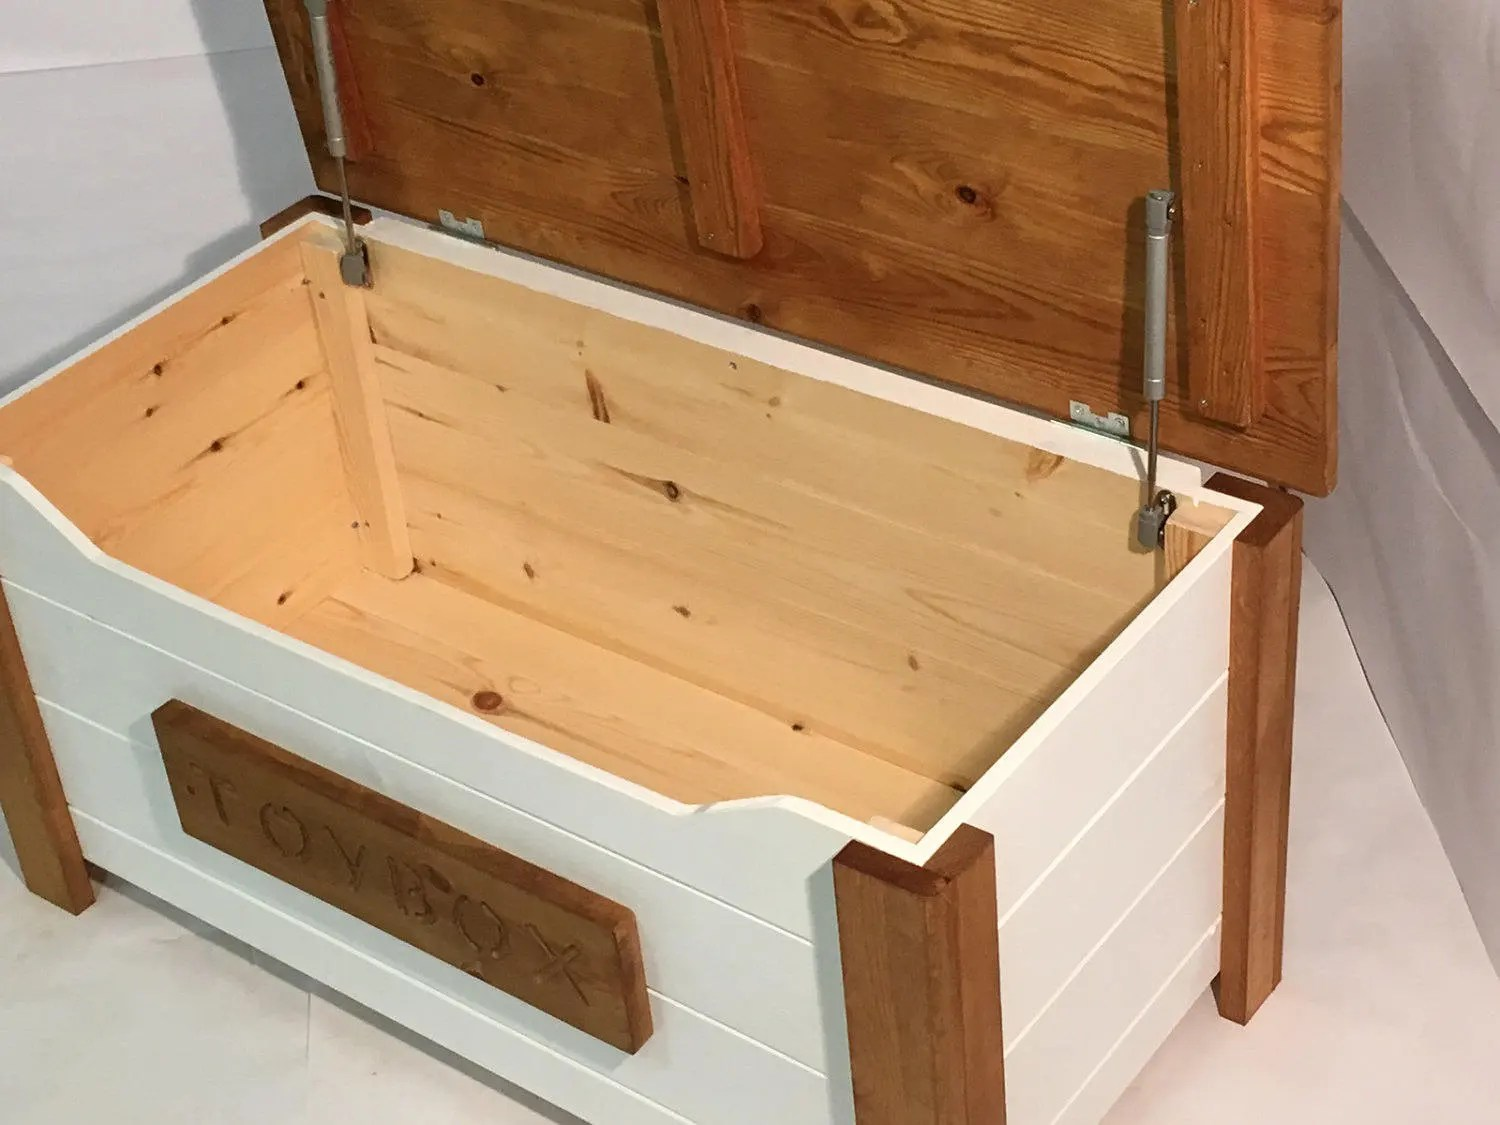 Toy Chests Handcrafted Wooden Rustic Pine Trunk Chest Toy Box Daisy White